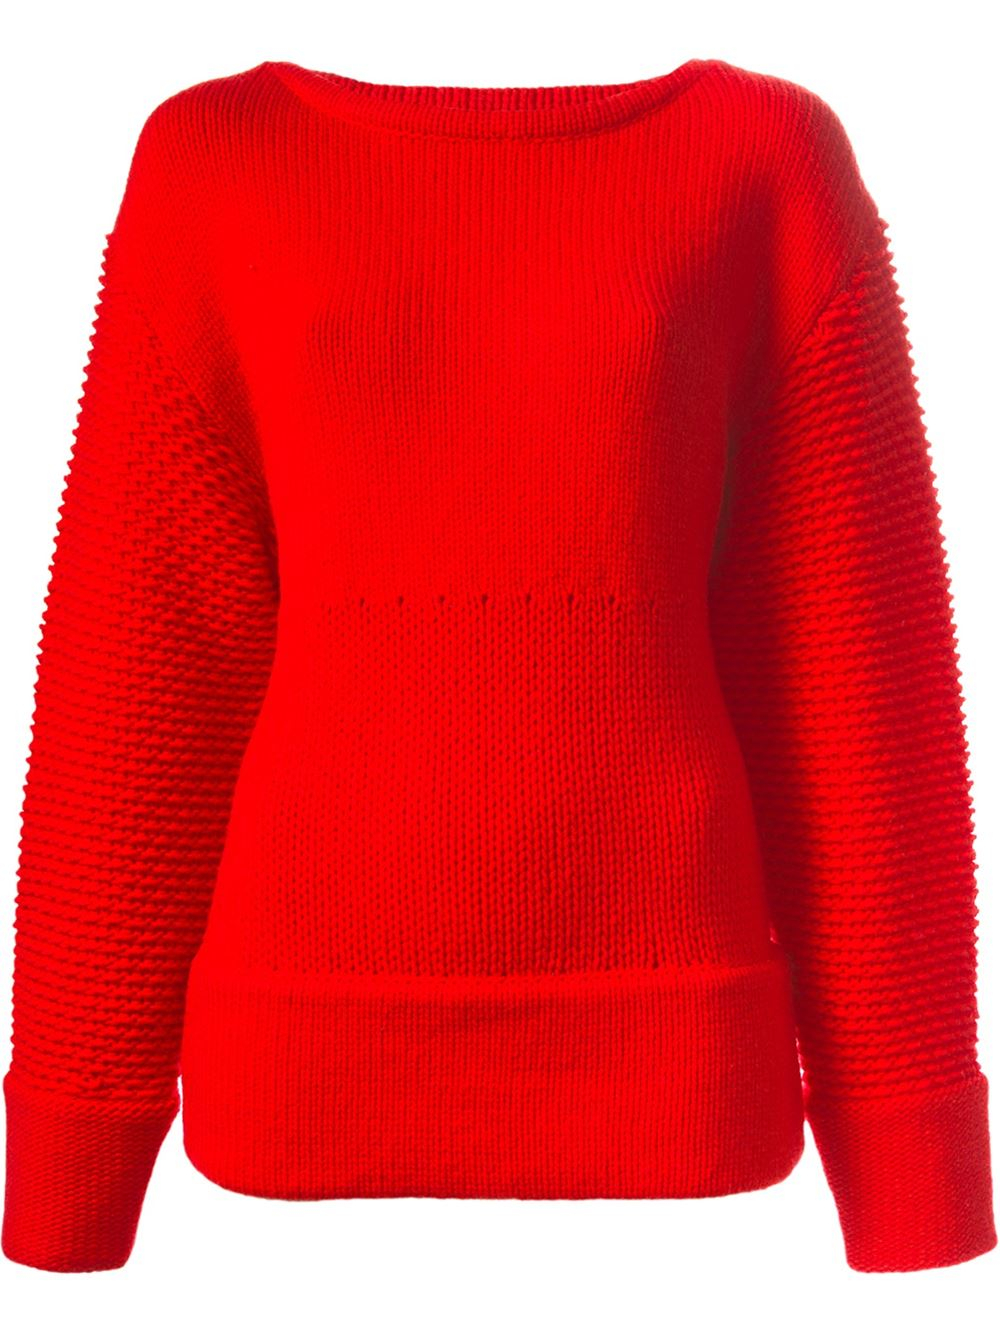 Helmut lang Textured Oversized Sweater in Red | Lyst